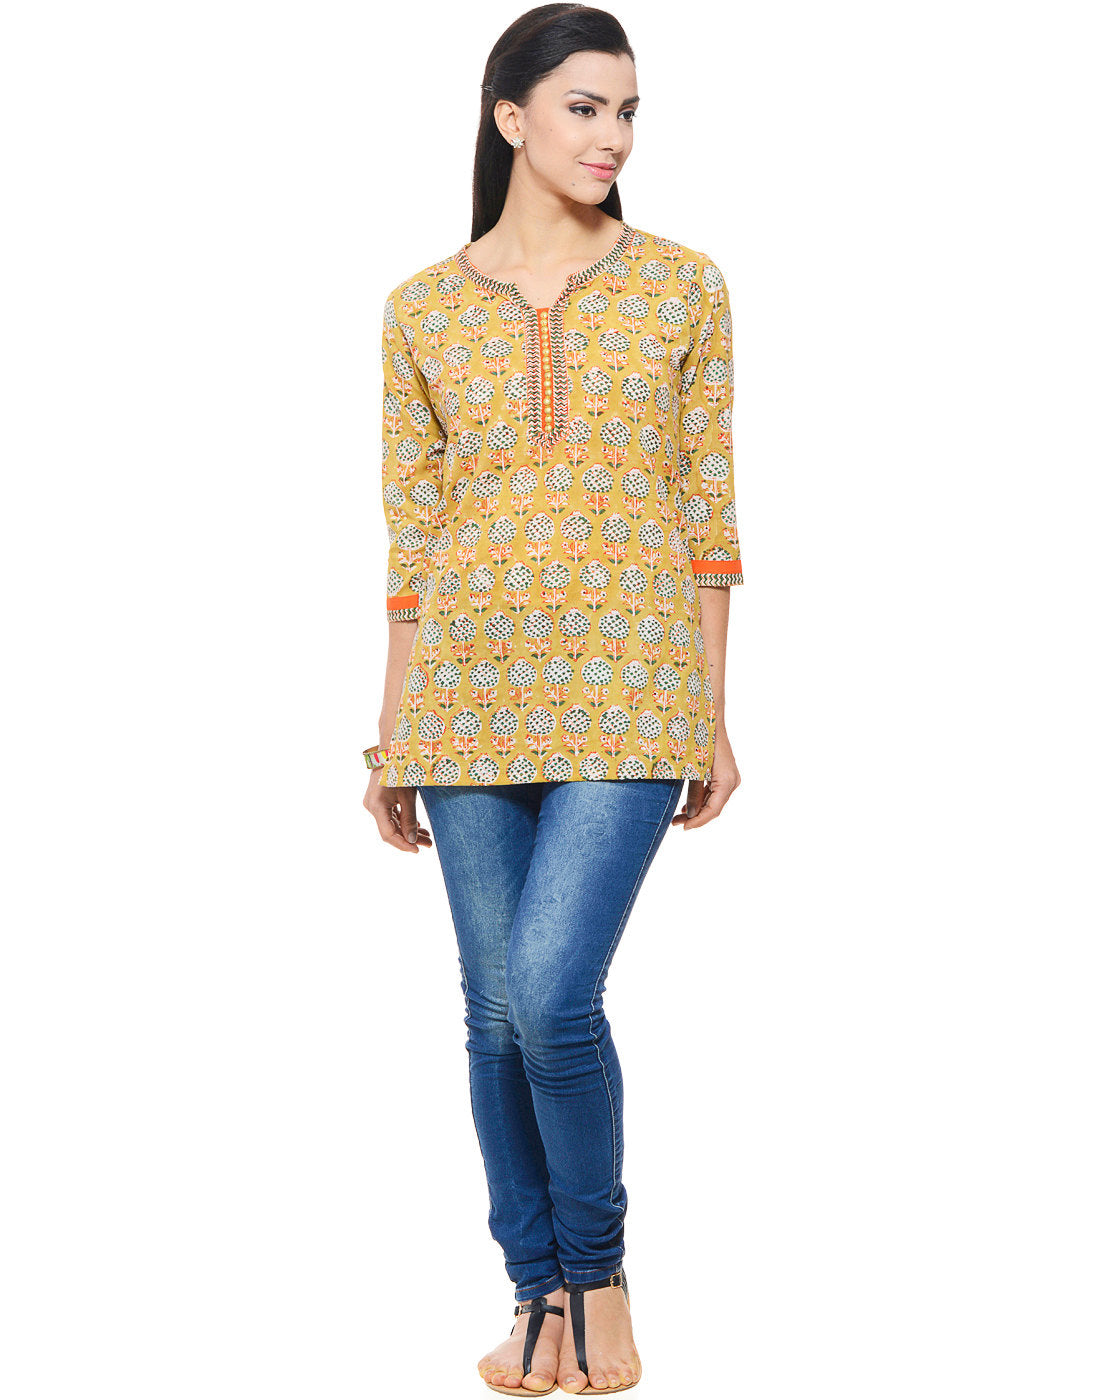 Hand block printed Ethnic Indian Tunic/ Kurti